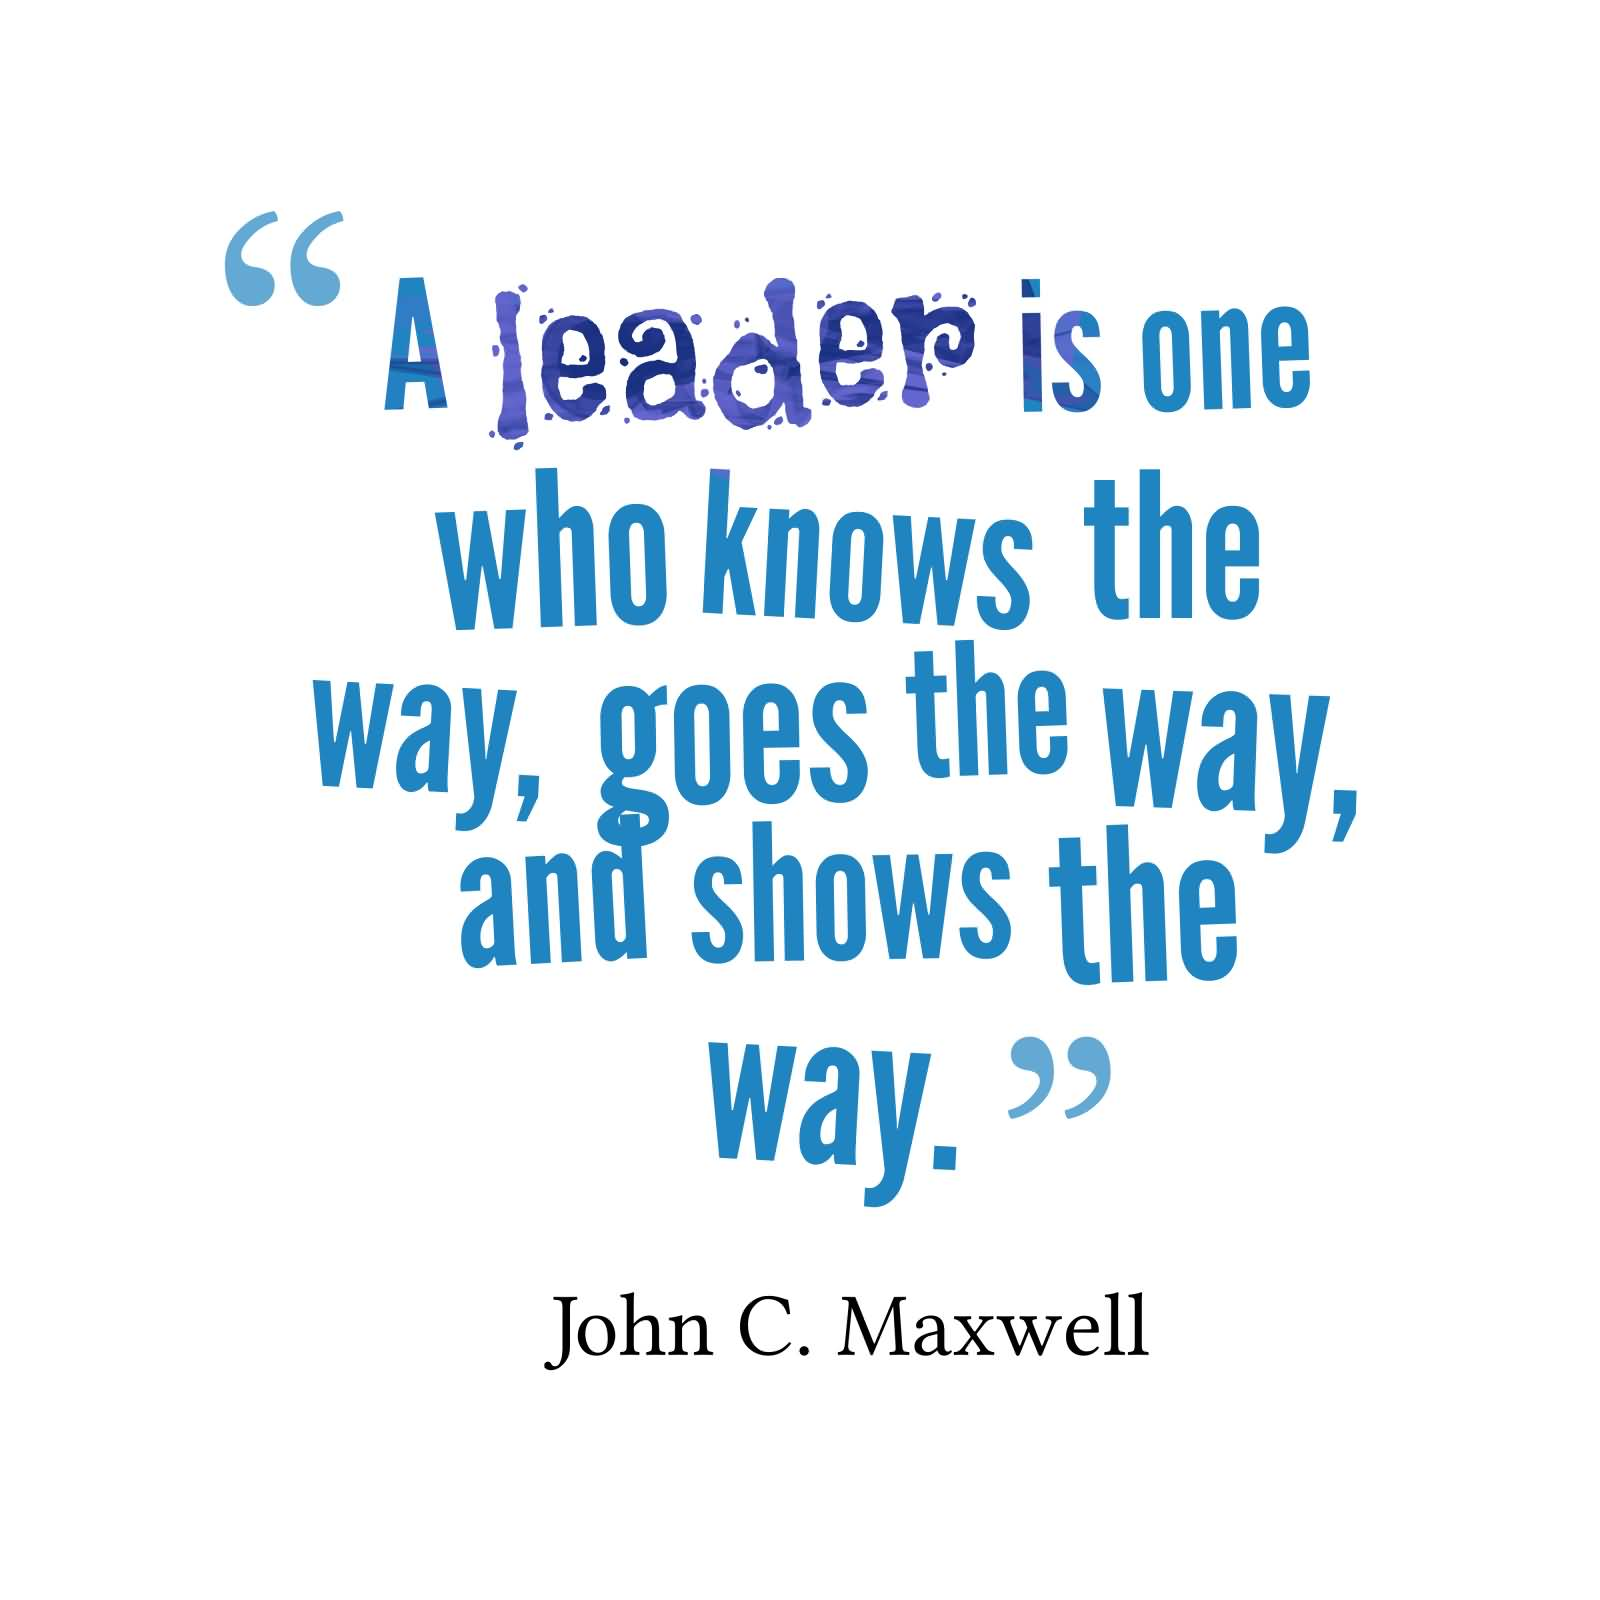 A leader is one who knows the way, goes the way, and shows the way - John C. Maxwell